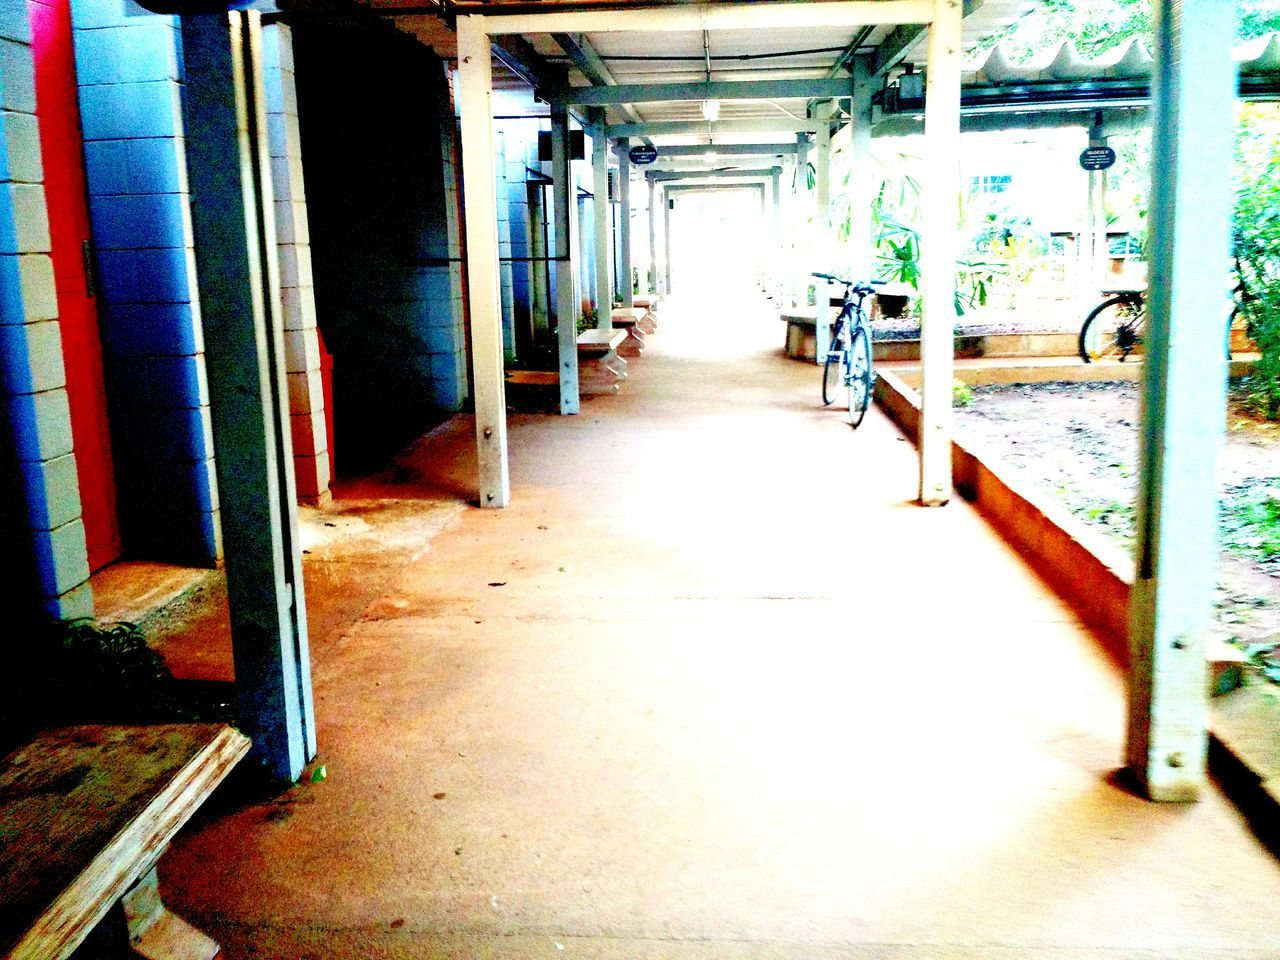 Sunlight Day No People Corridor Universiry Simple Normal Day Common Bicicle